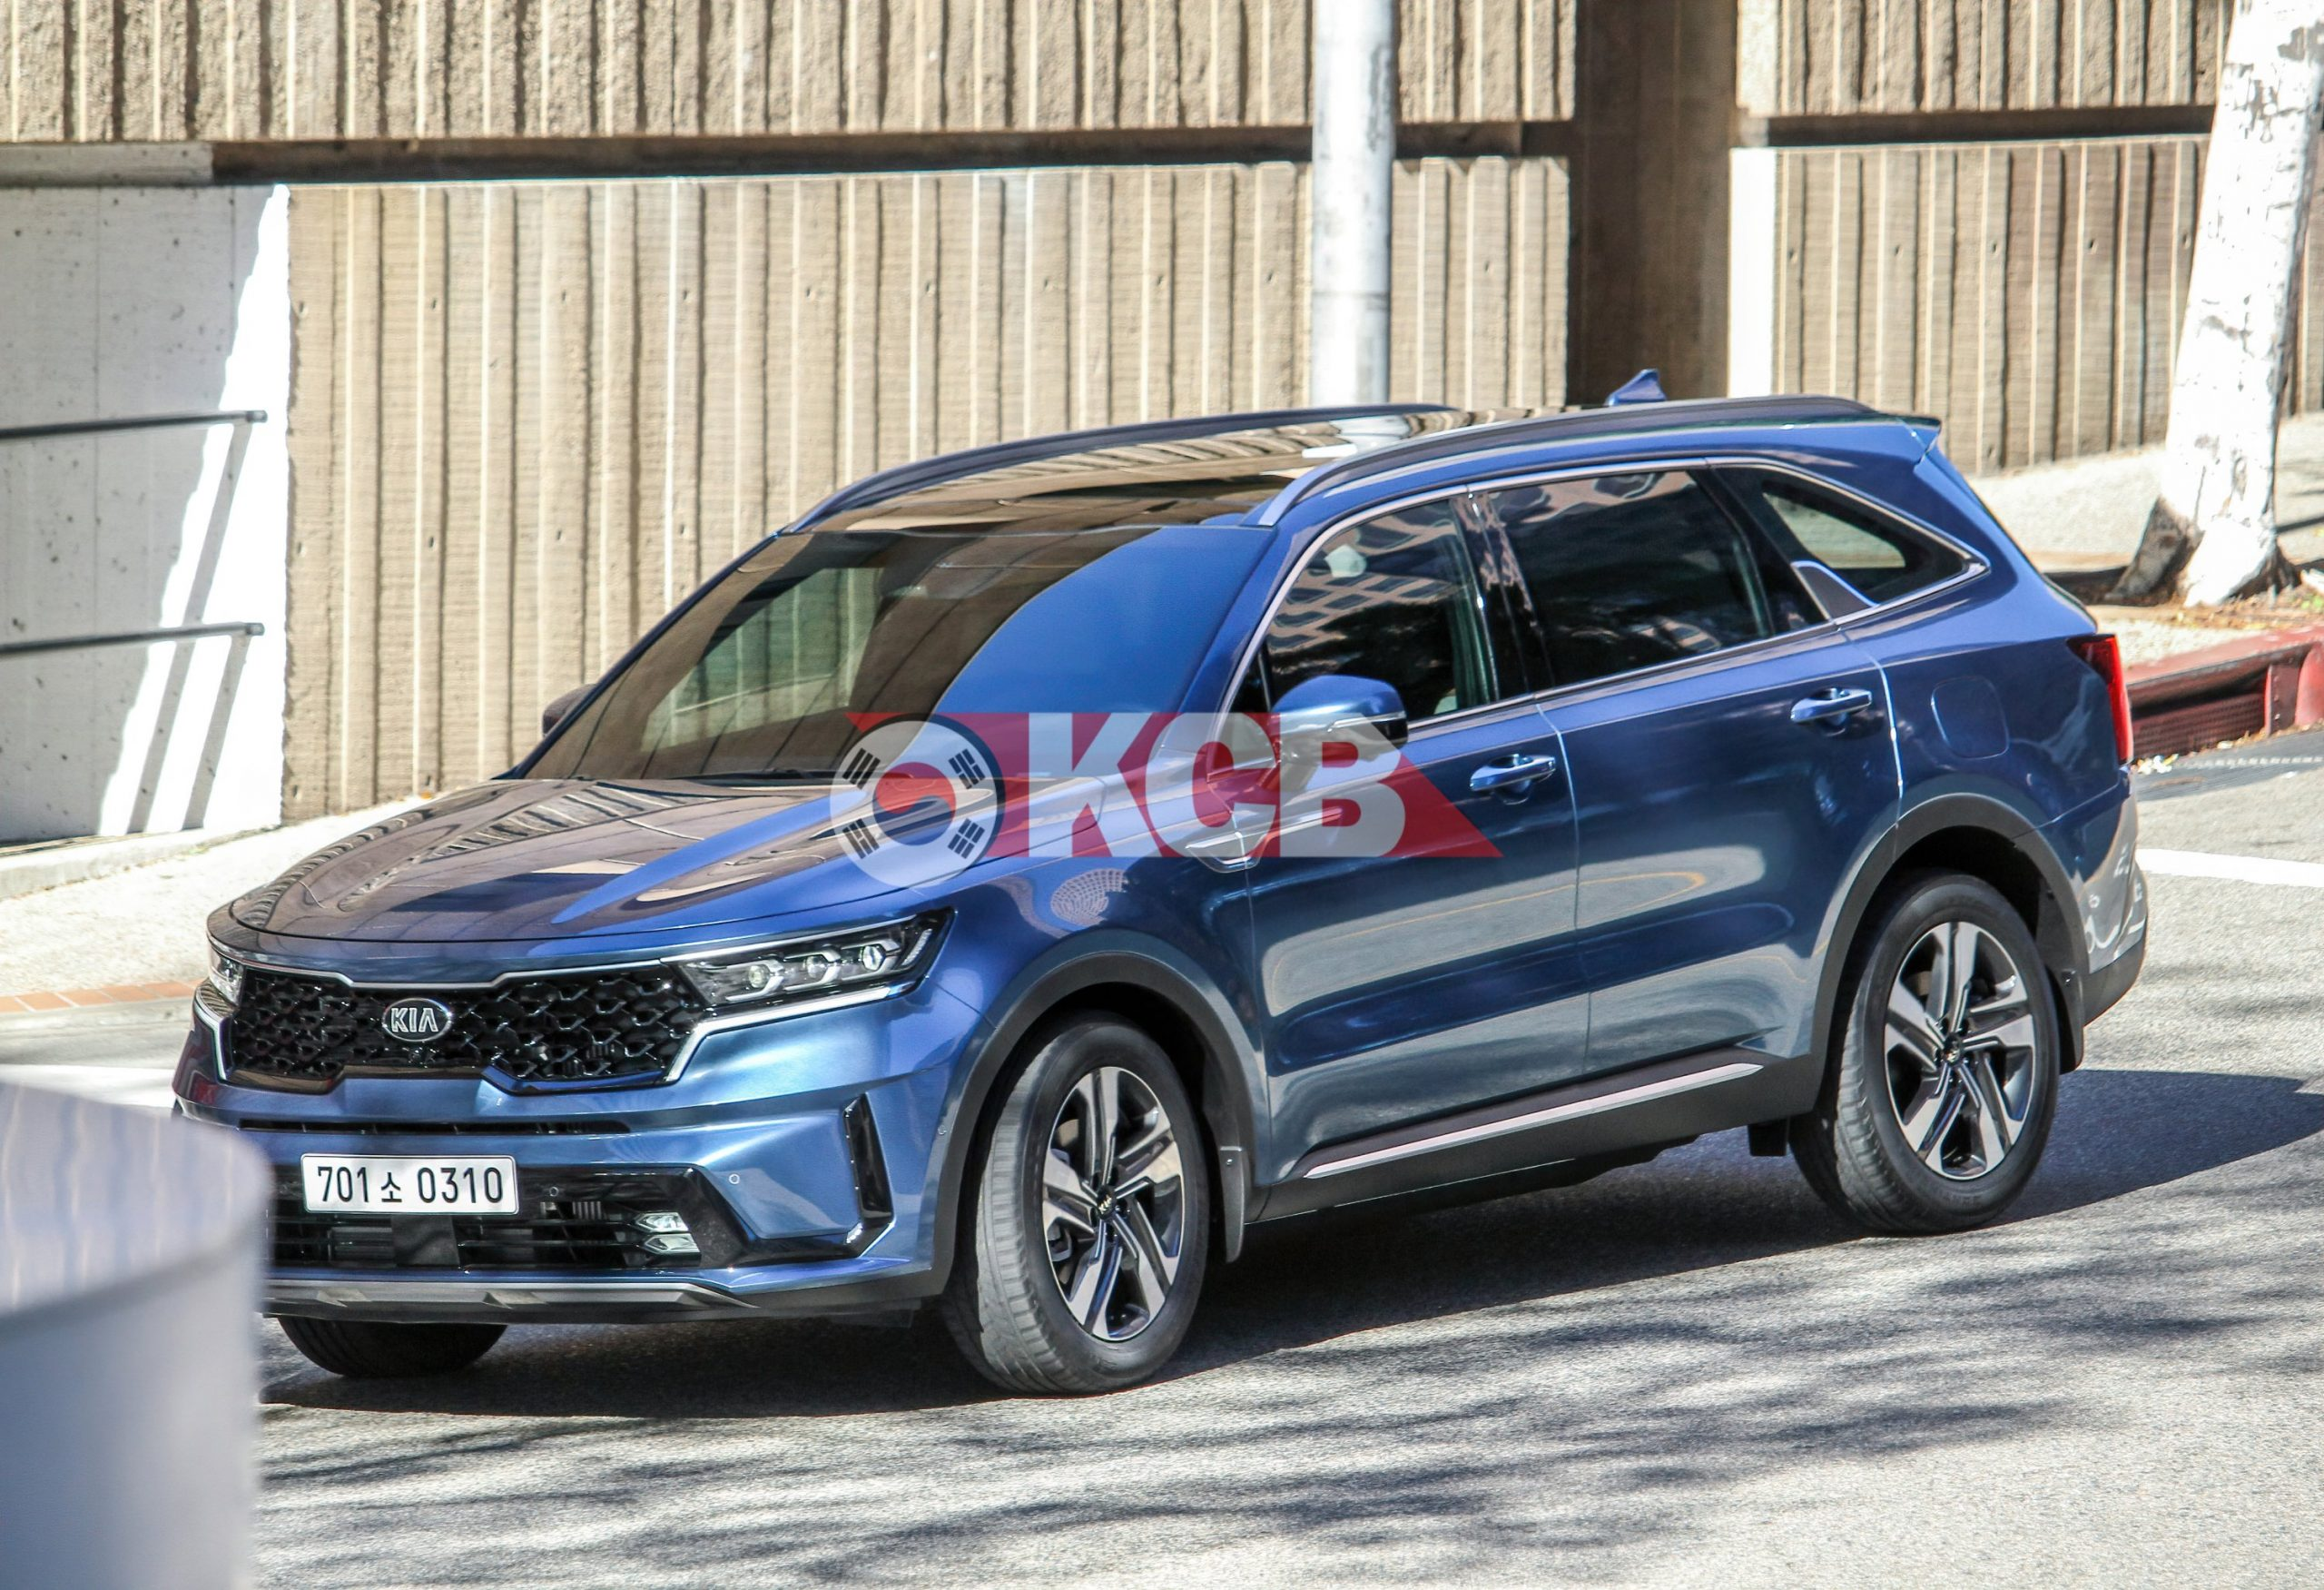 Kia Sorento Spied During Photoshoot